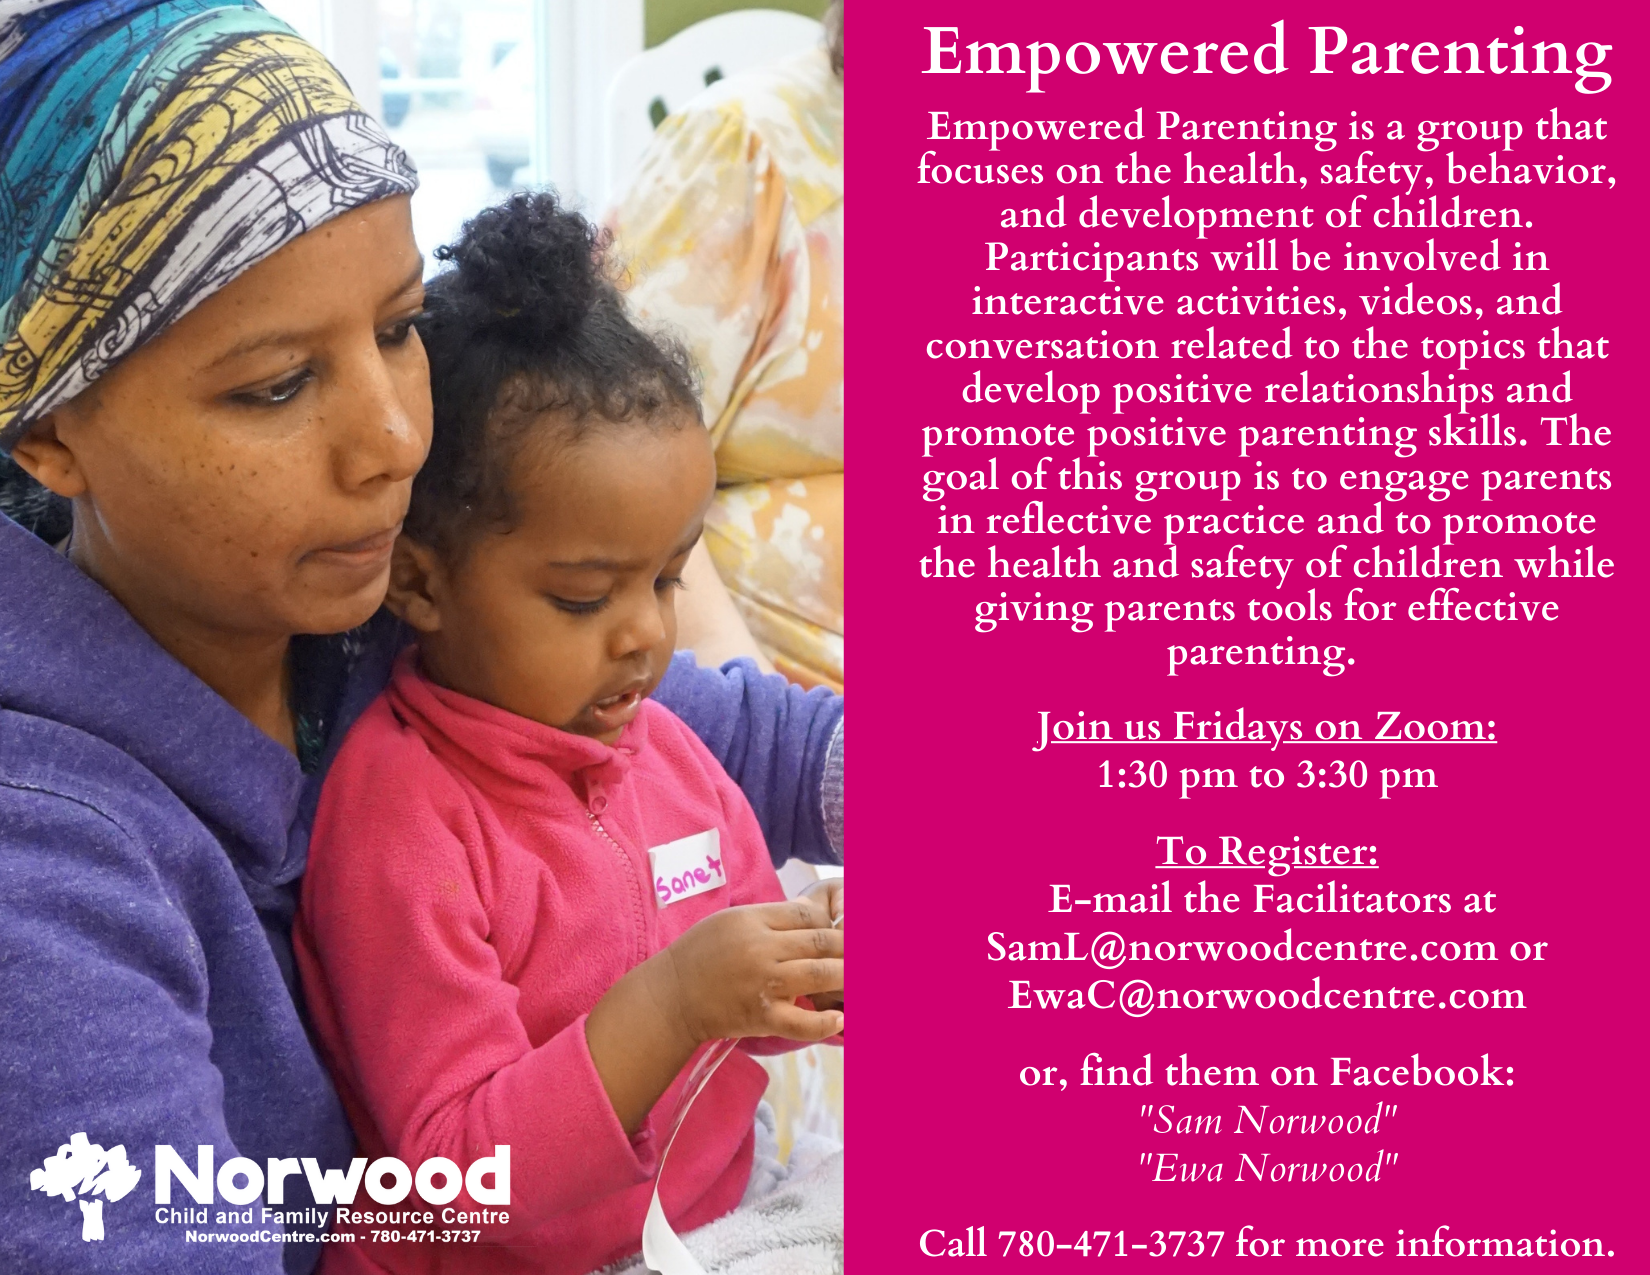 Empowered Parenting